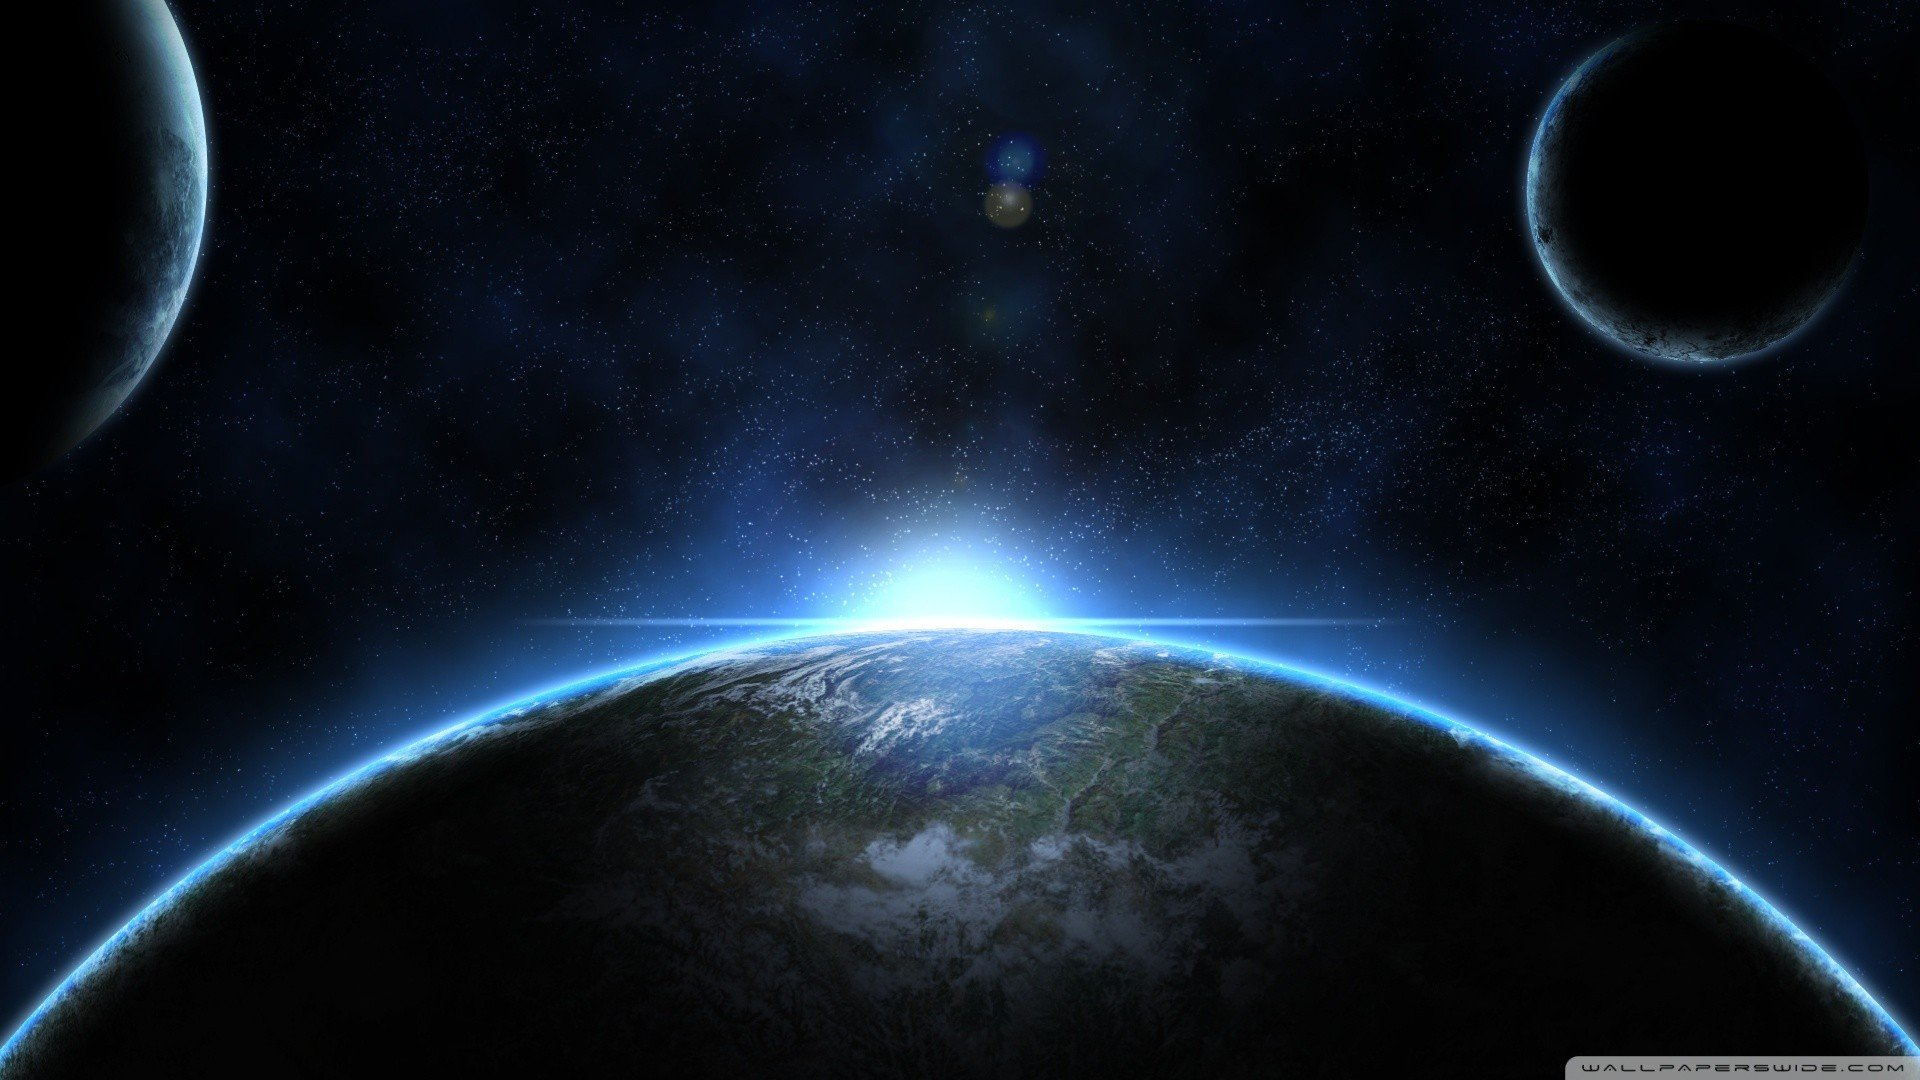 Sun outer space planets moon earth wallpaper 1920x1080 for Outer space planets